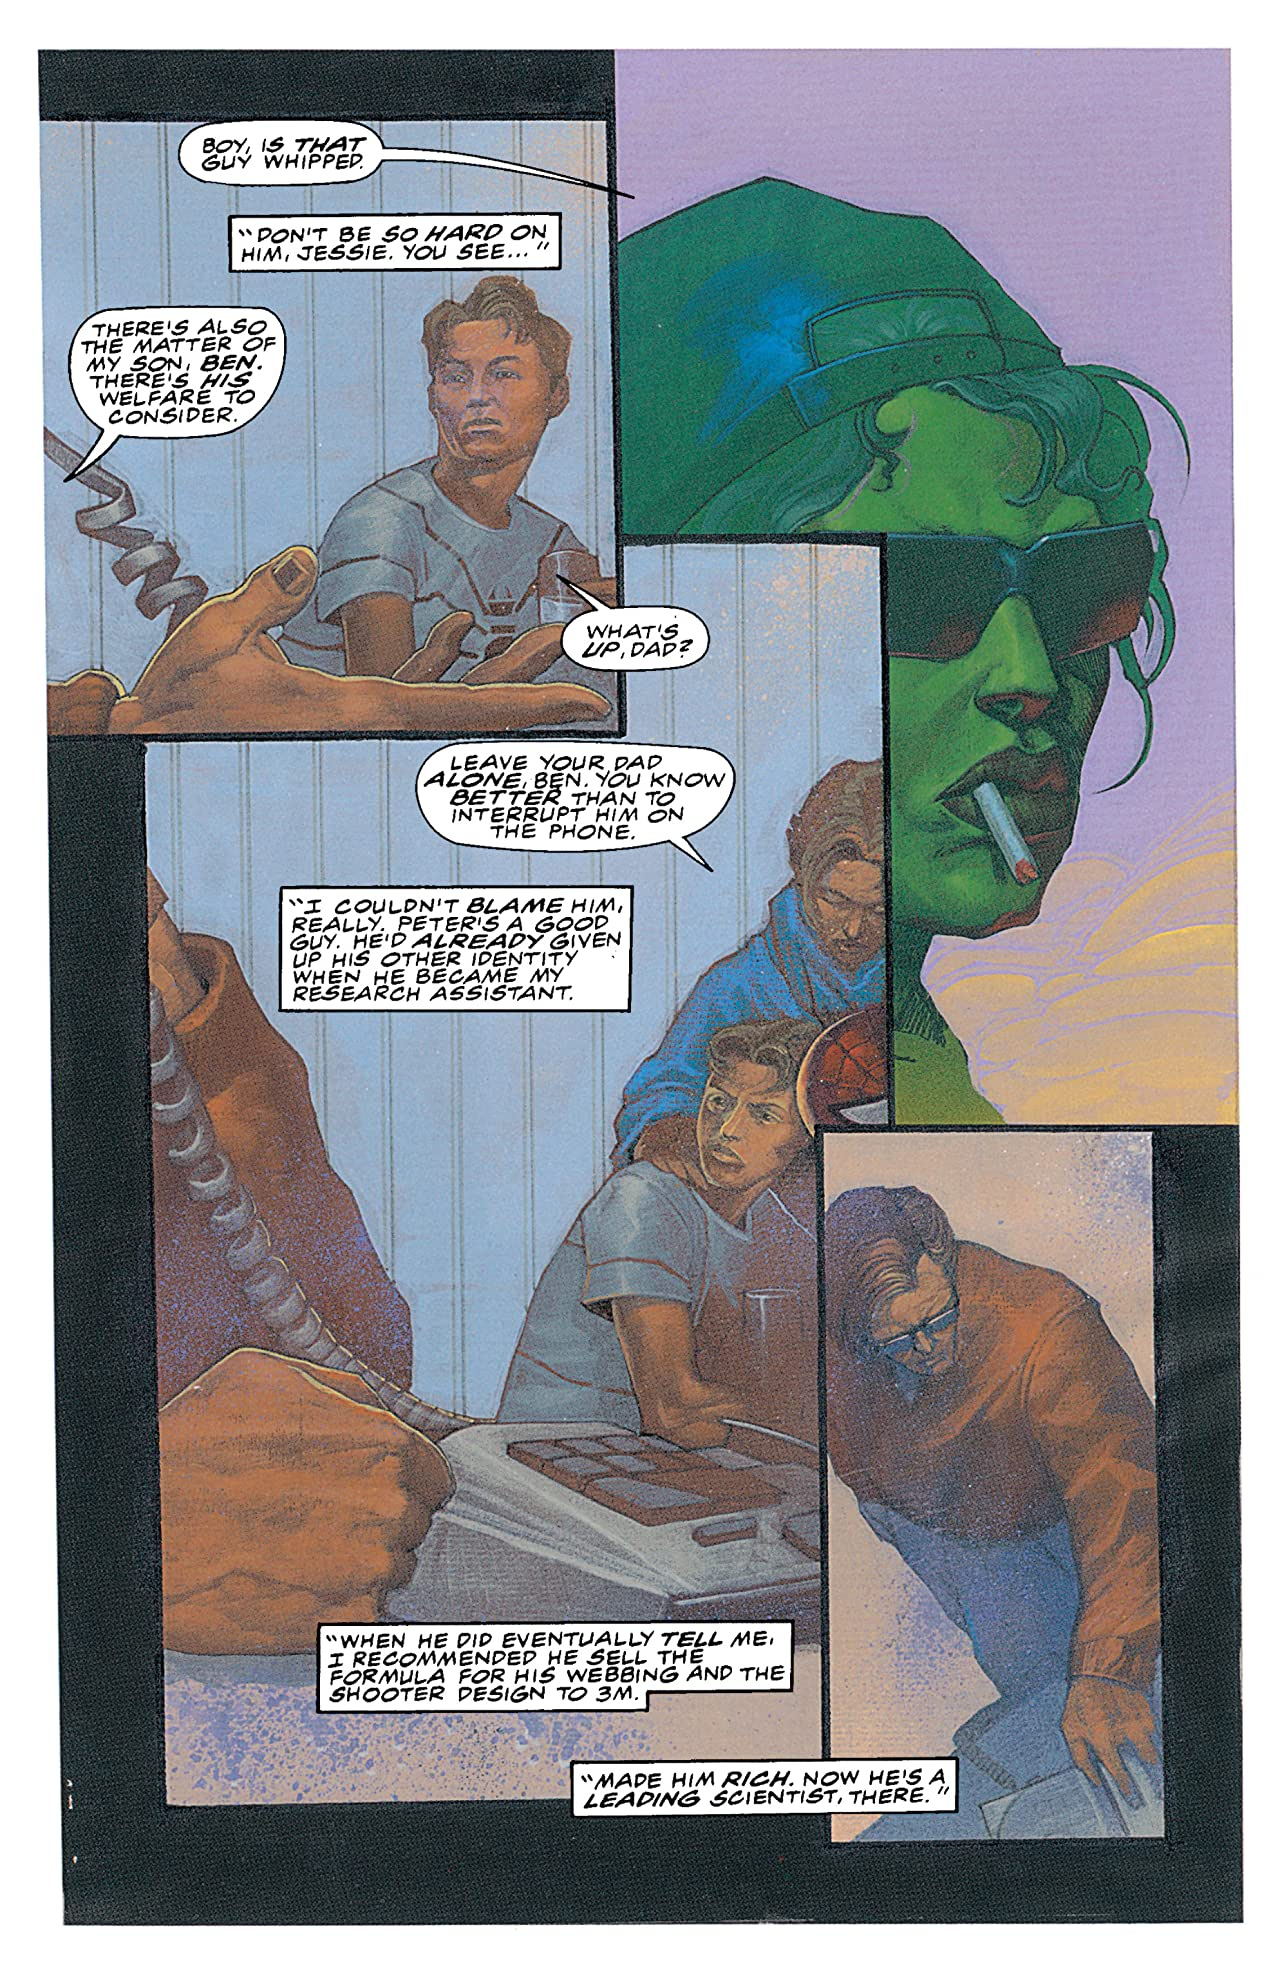 The Last Avengers Story (1995) #2 (of 2)